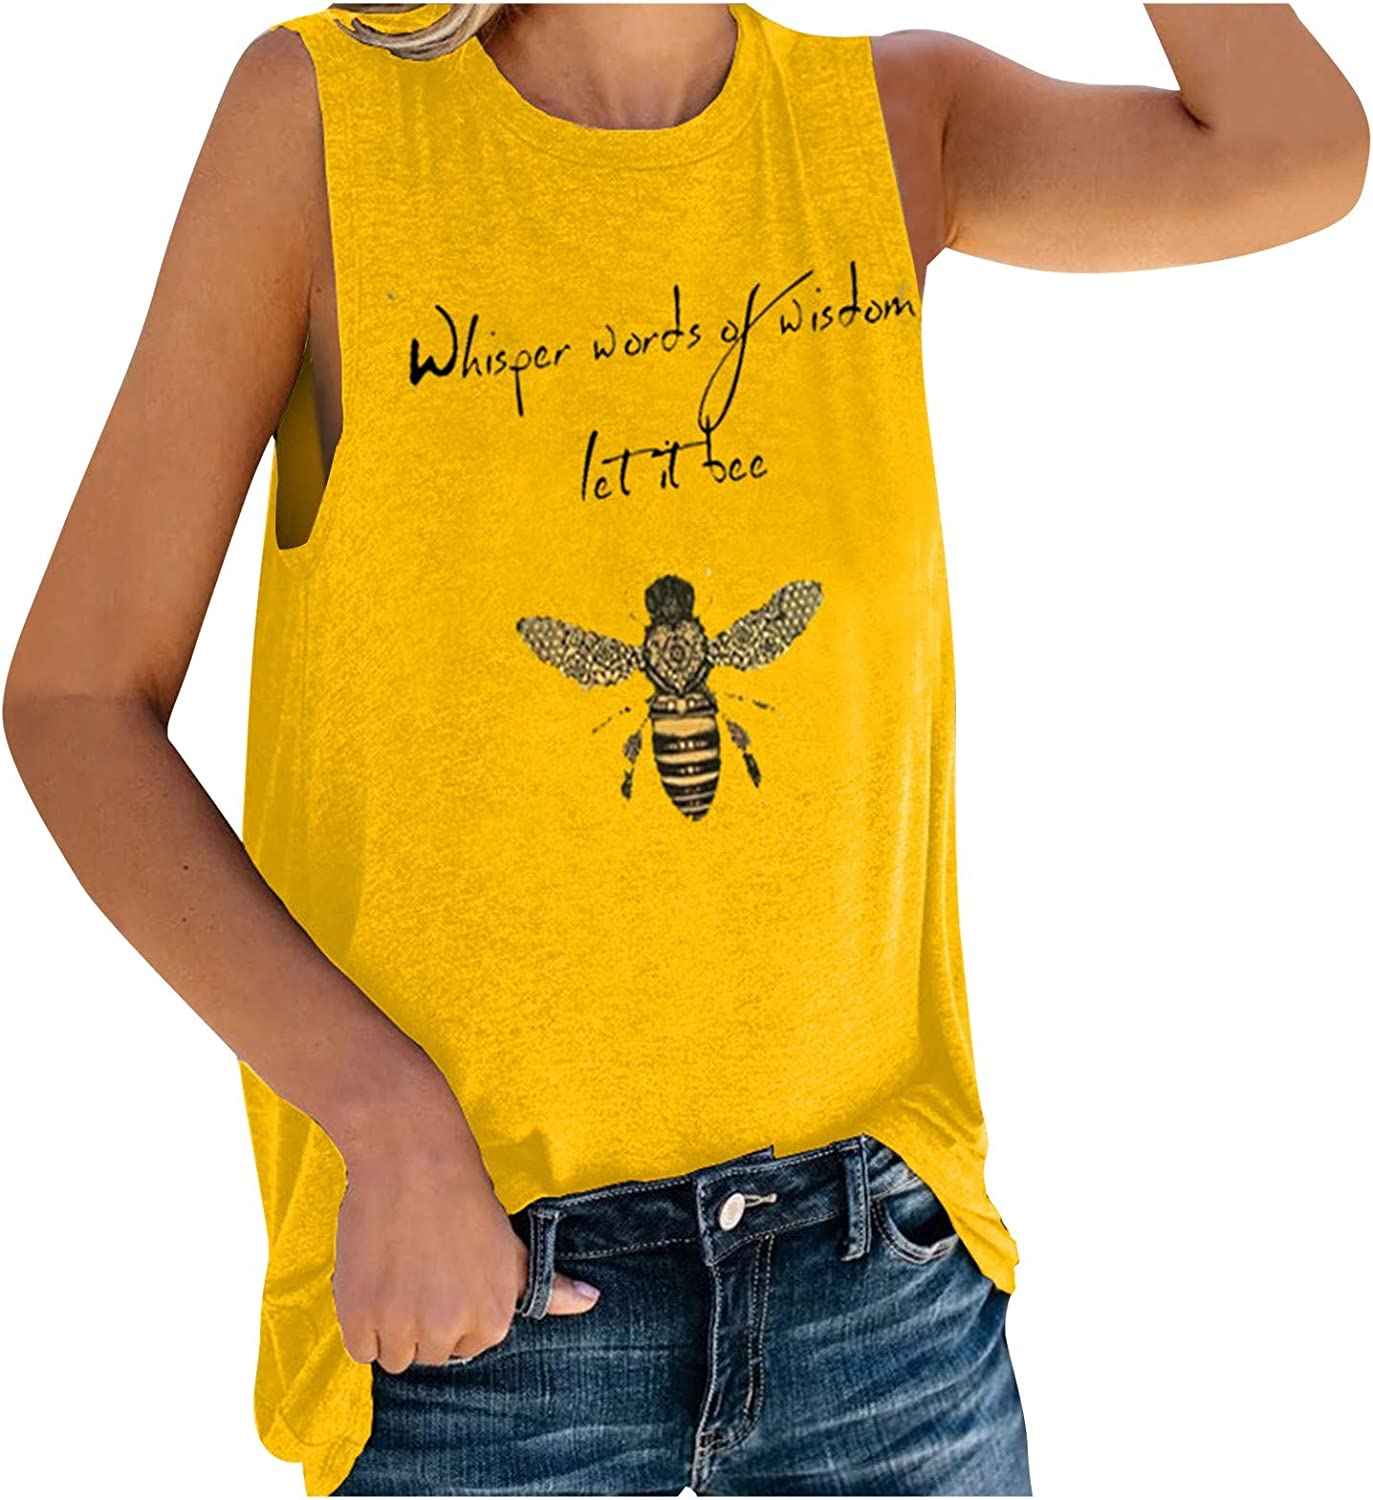 Euone_Clothes Shirts for Women Sexy Casual, 2021 let it bee Women's Printed Round Neck Vest Tank Camis Top Blouse